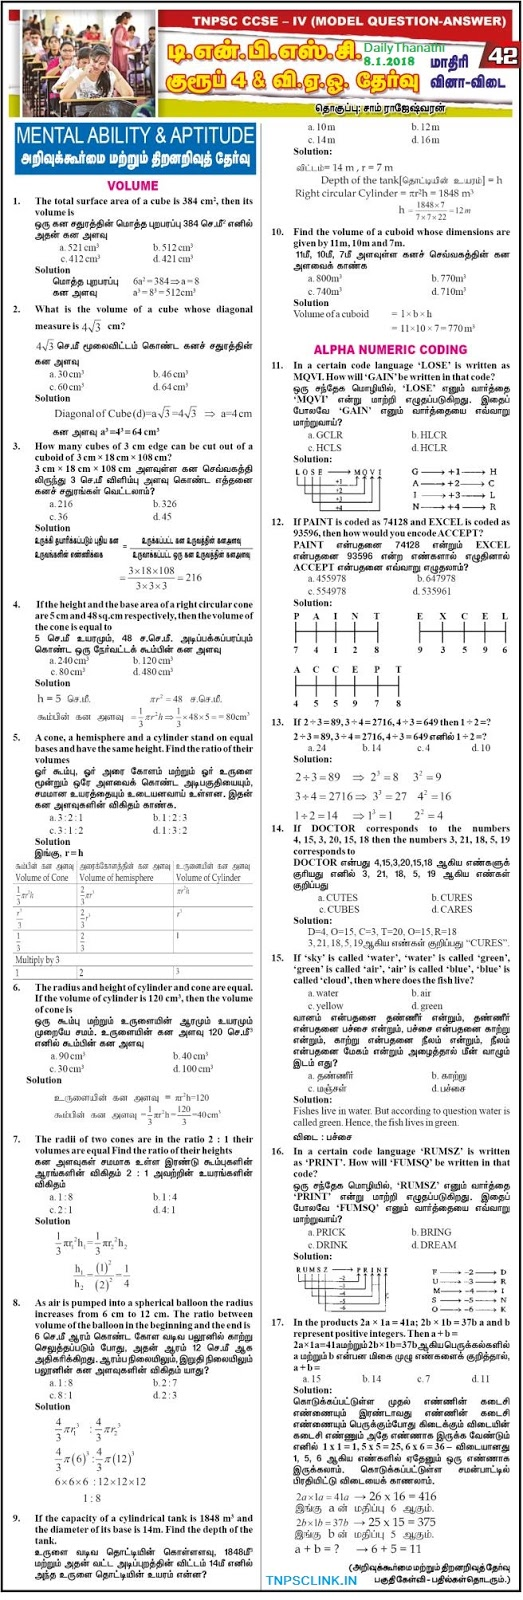 General Mental Ability Test Questions MCQs